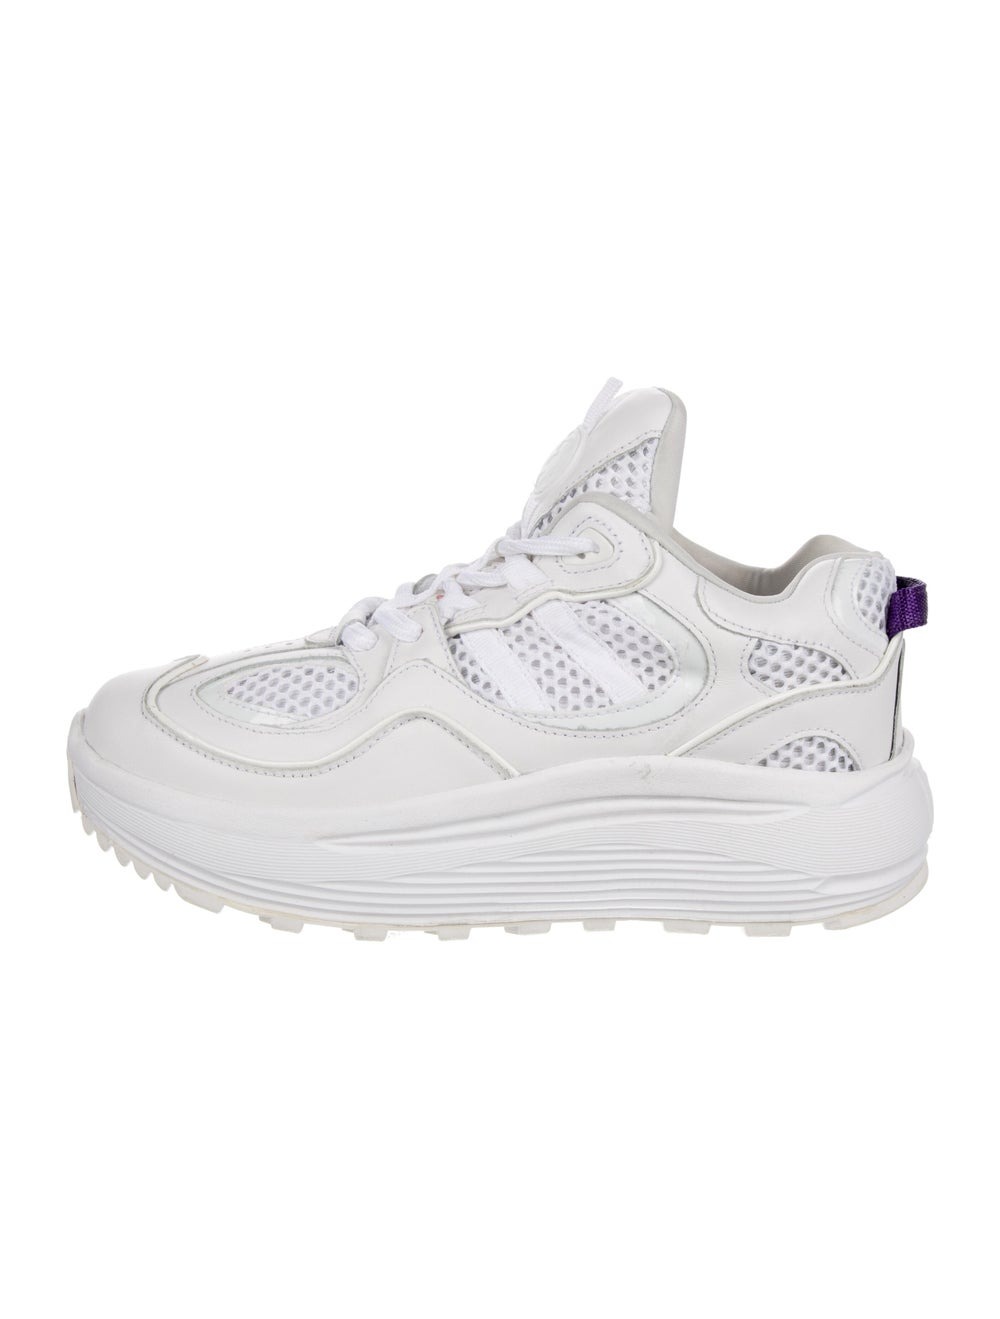 Eytys Leather Sneakers White - image 1